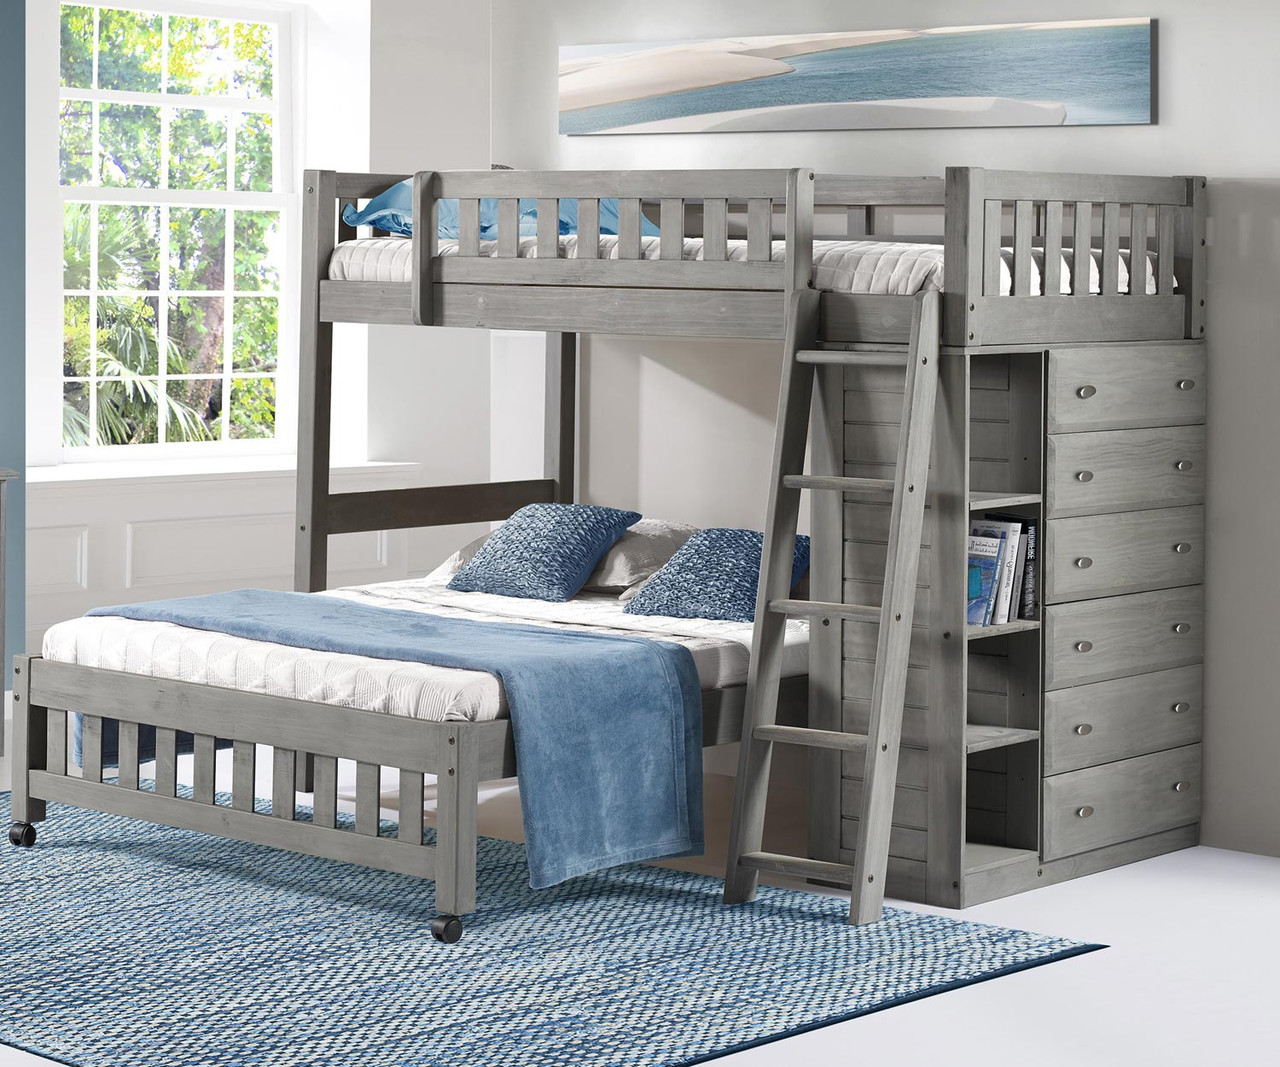 Discovery World Furniture Westport Gray Twin Over Full Loft Bed 3205 Loft Bed For Kids And Teens With Built In Storage Drawers